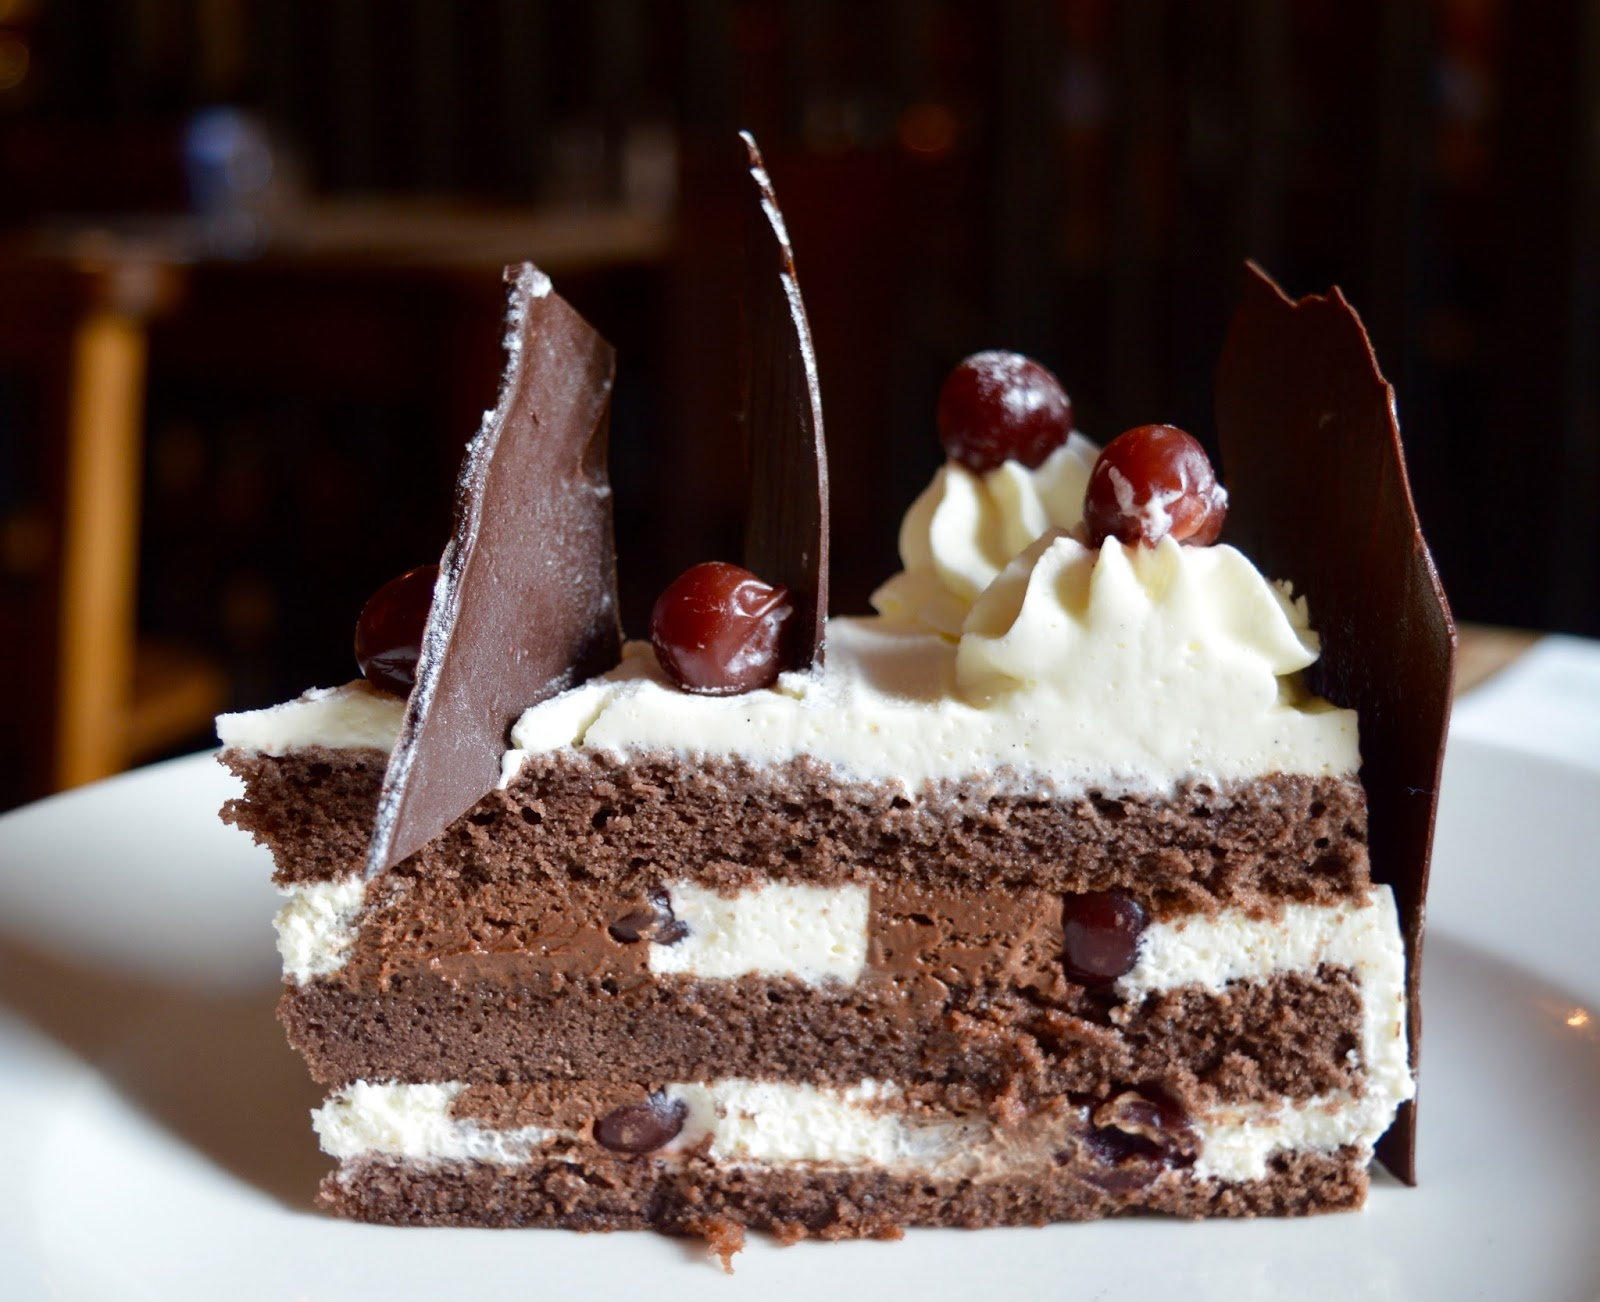 A Classic Black Forest Gateau Recipe as inspired by the 80's and #RennieHappyEating